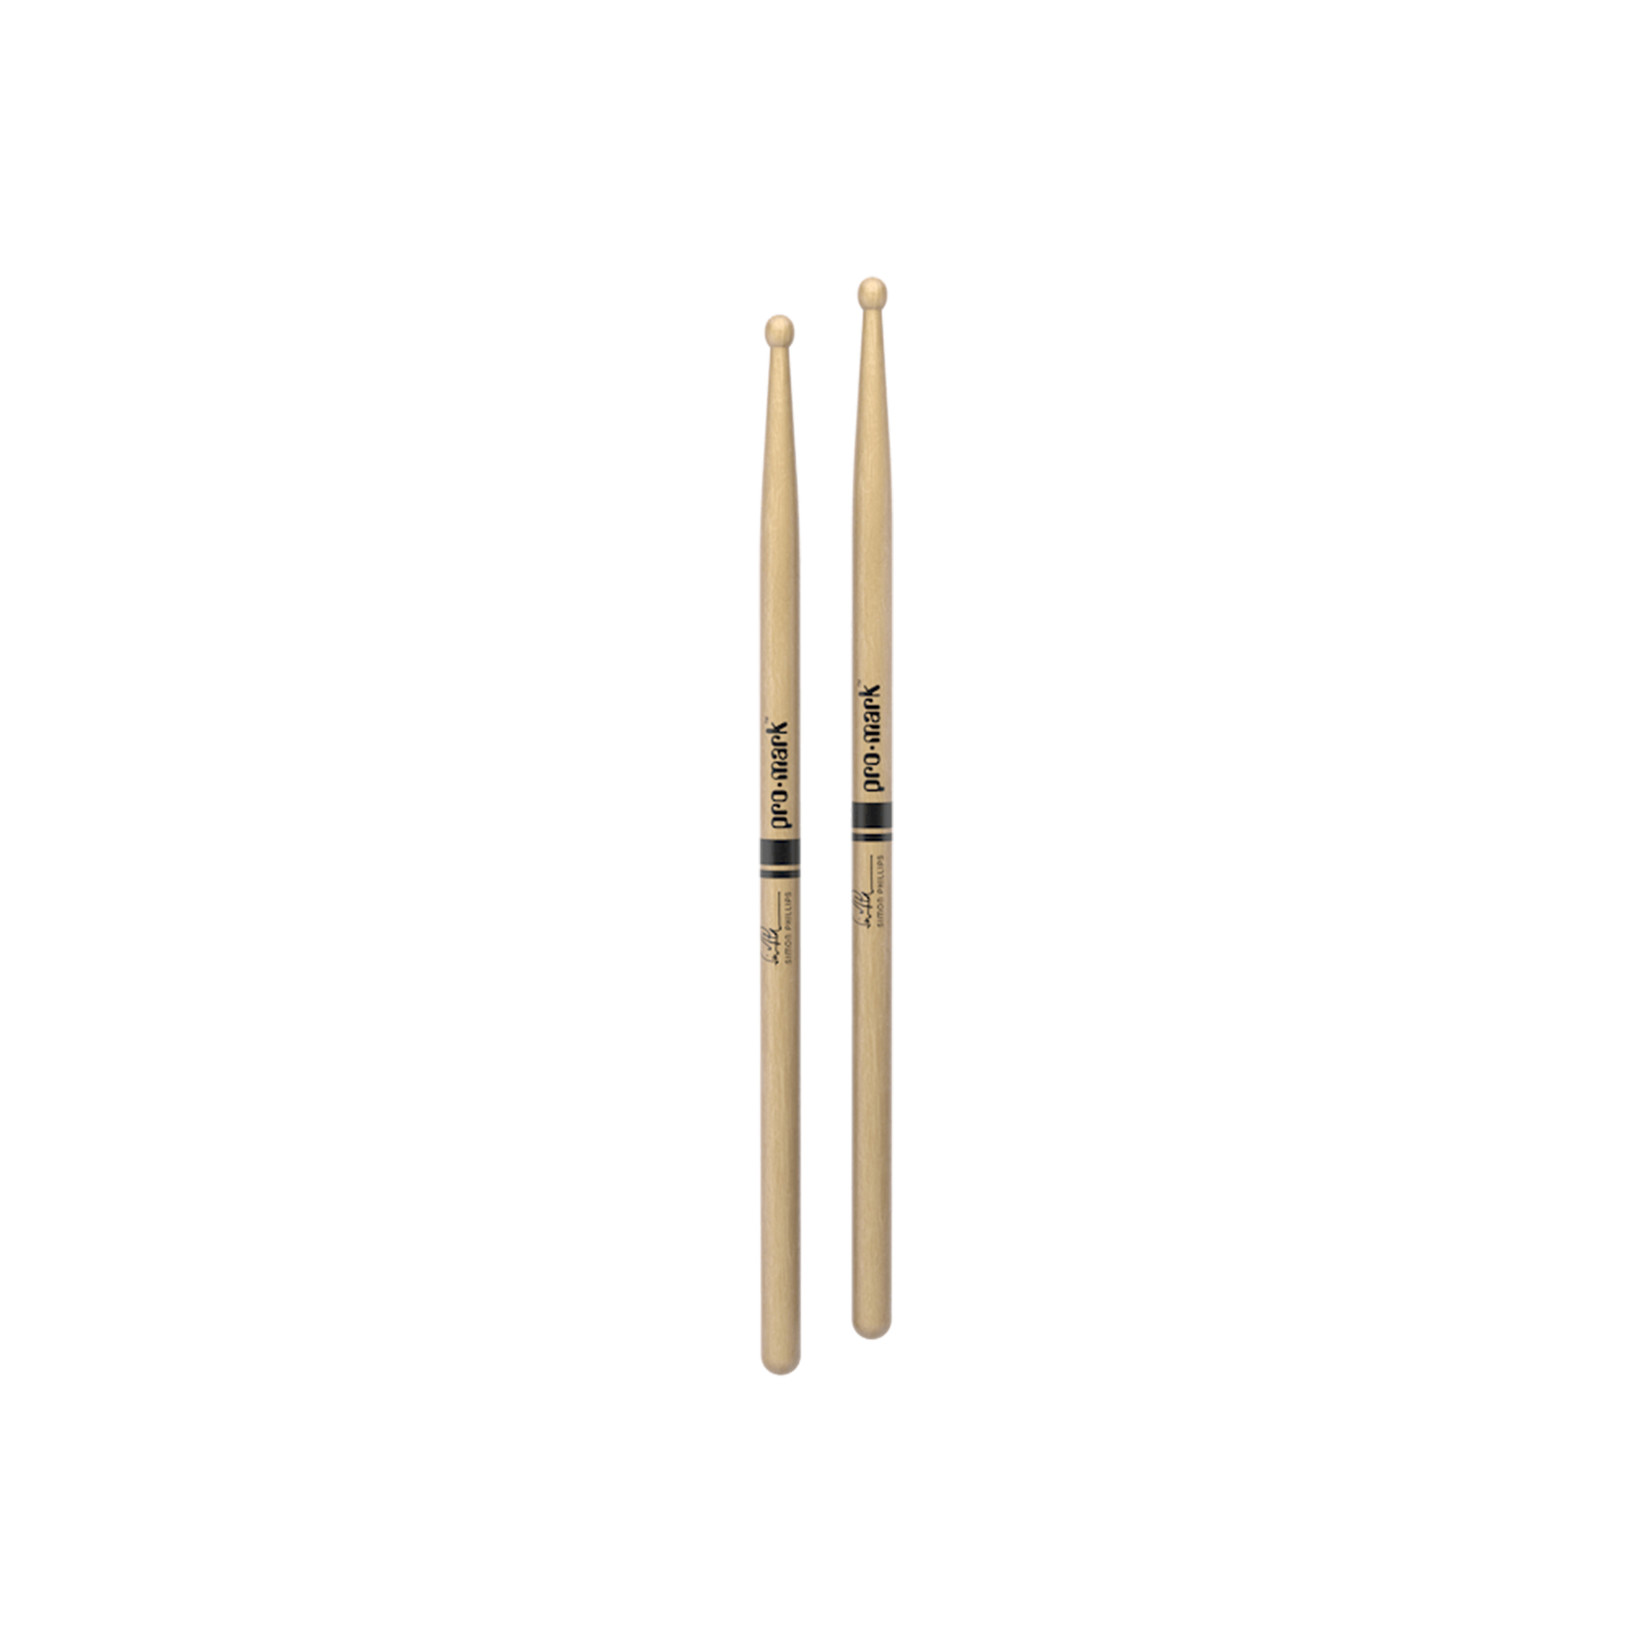 Promark Promark Hickory 707 - Simon Phillips